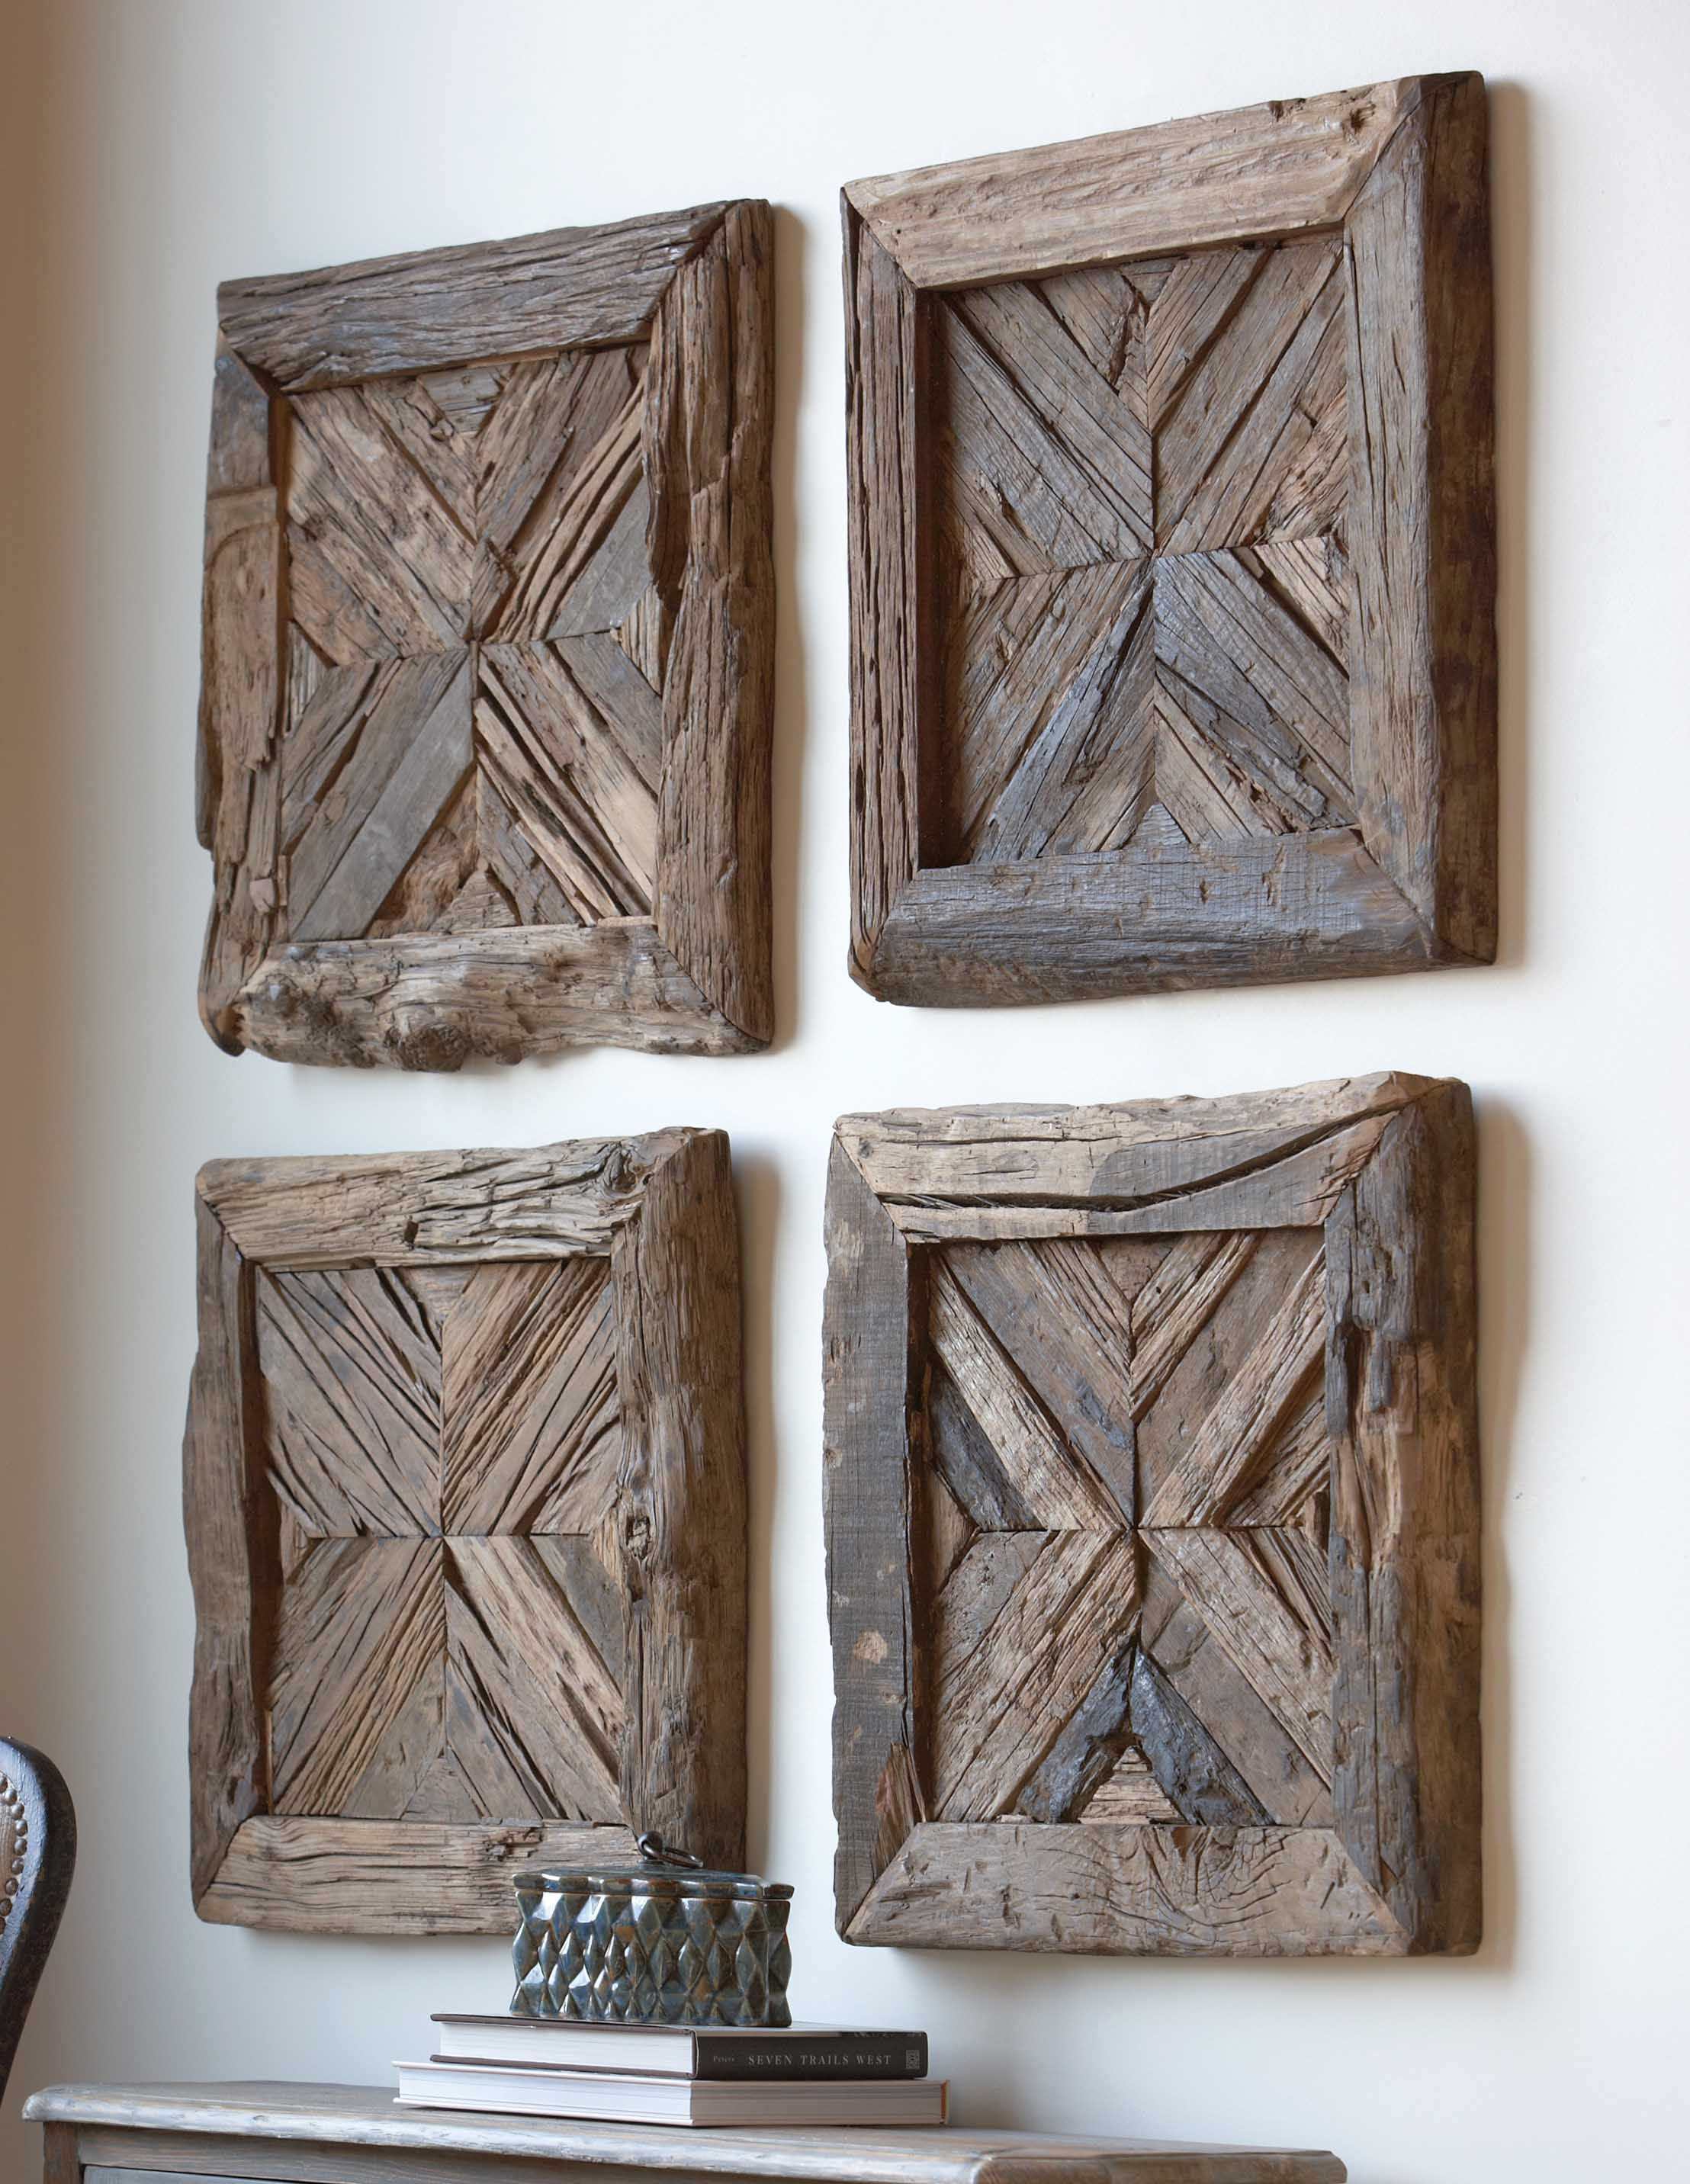 Uttermost Rennick Reclaimed Wood Wall Art Rustic Wood Walls Reclaimed Wood Wall Rustic Wall Art